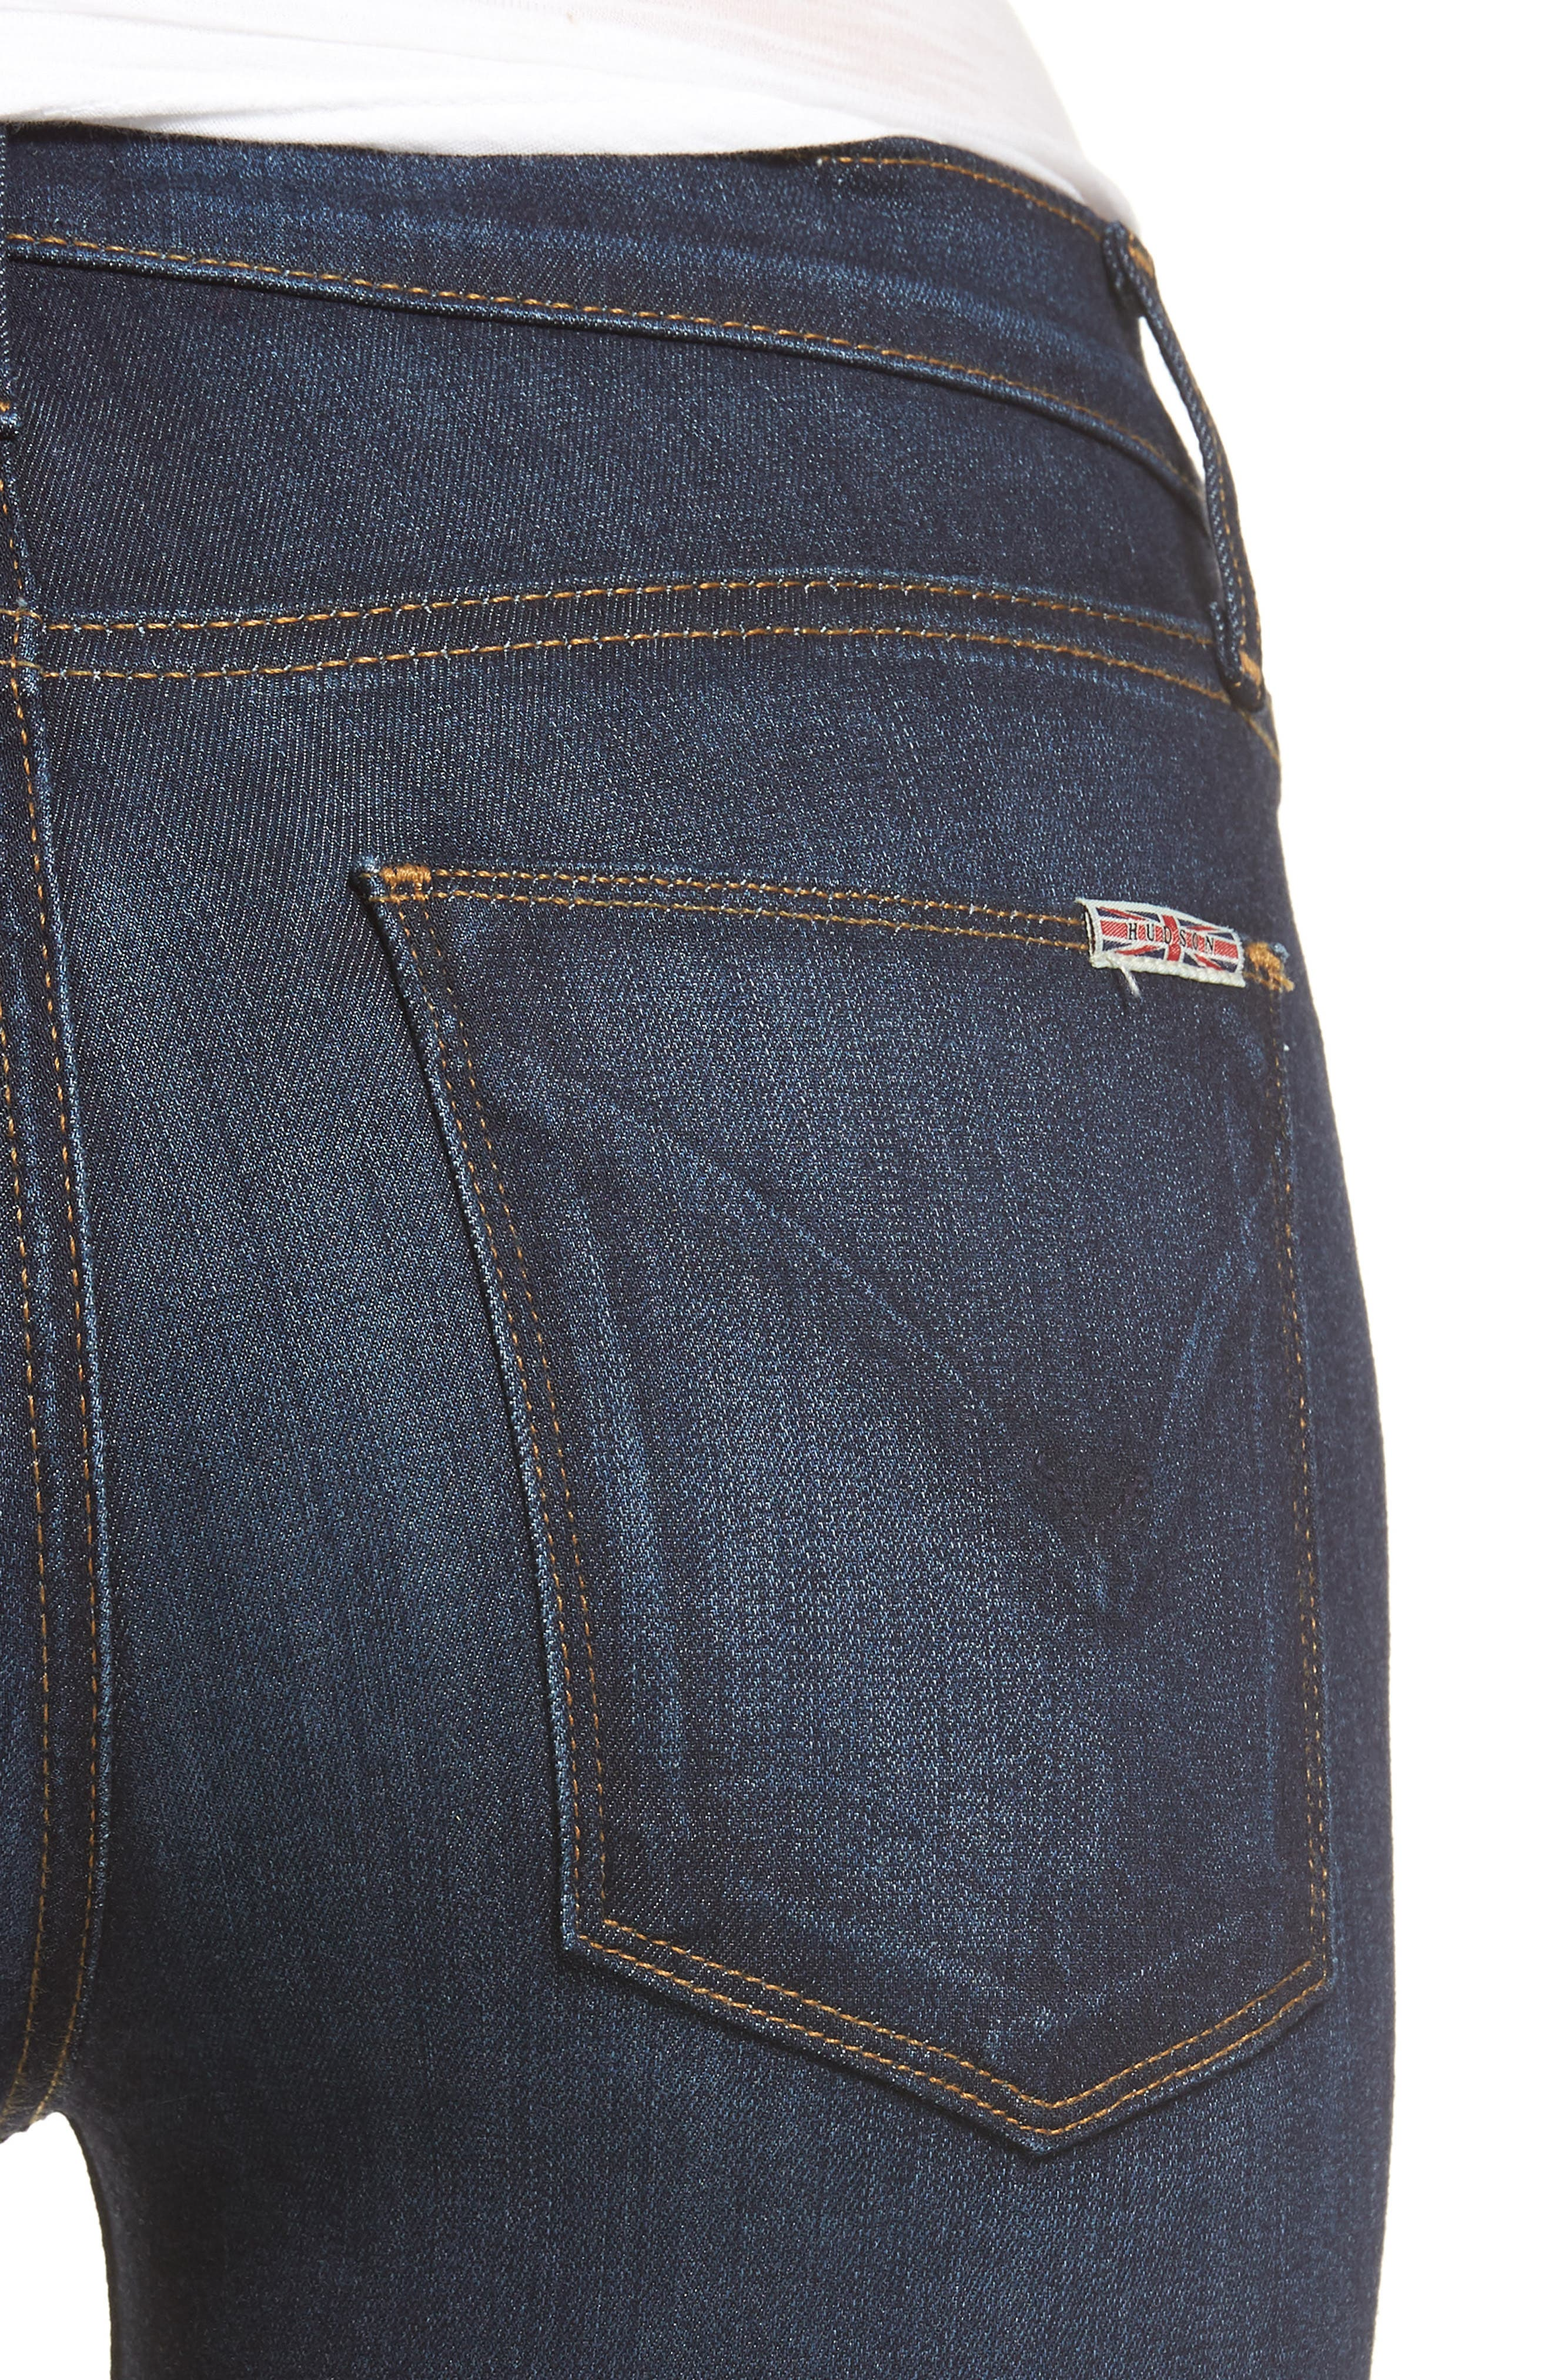 'Nico' Ankle Super Skinny Jeans,                             Alternate thumbnail 4, color,                             402